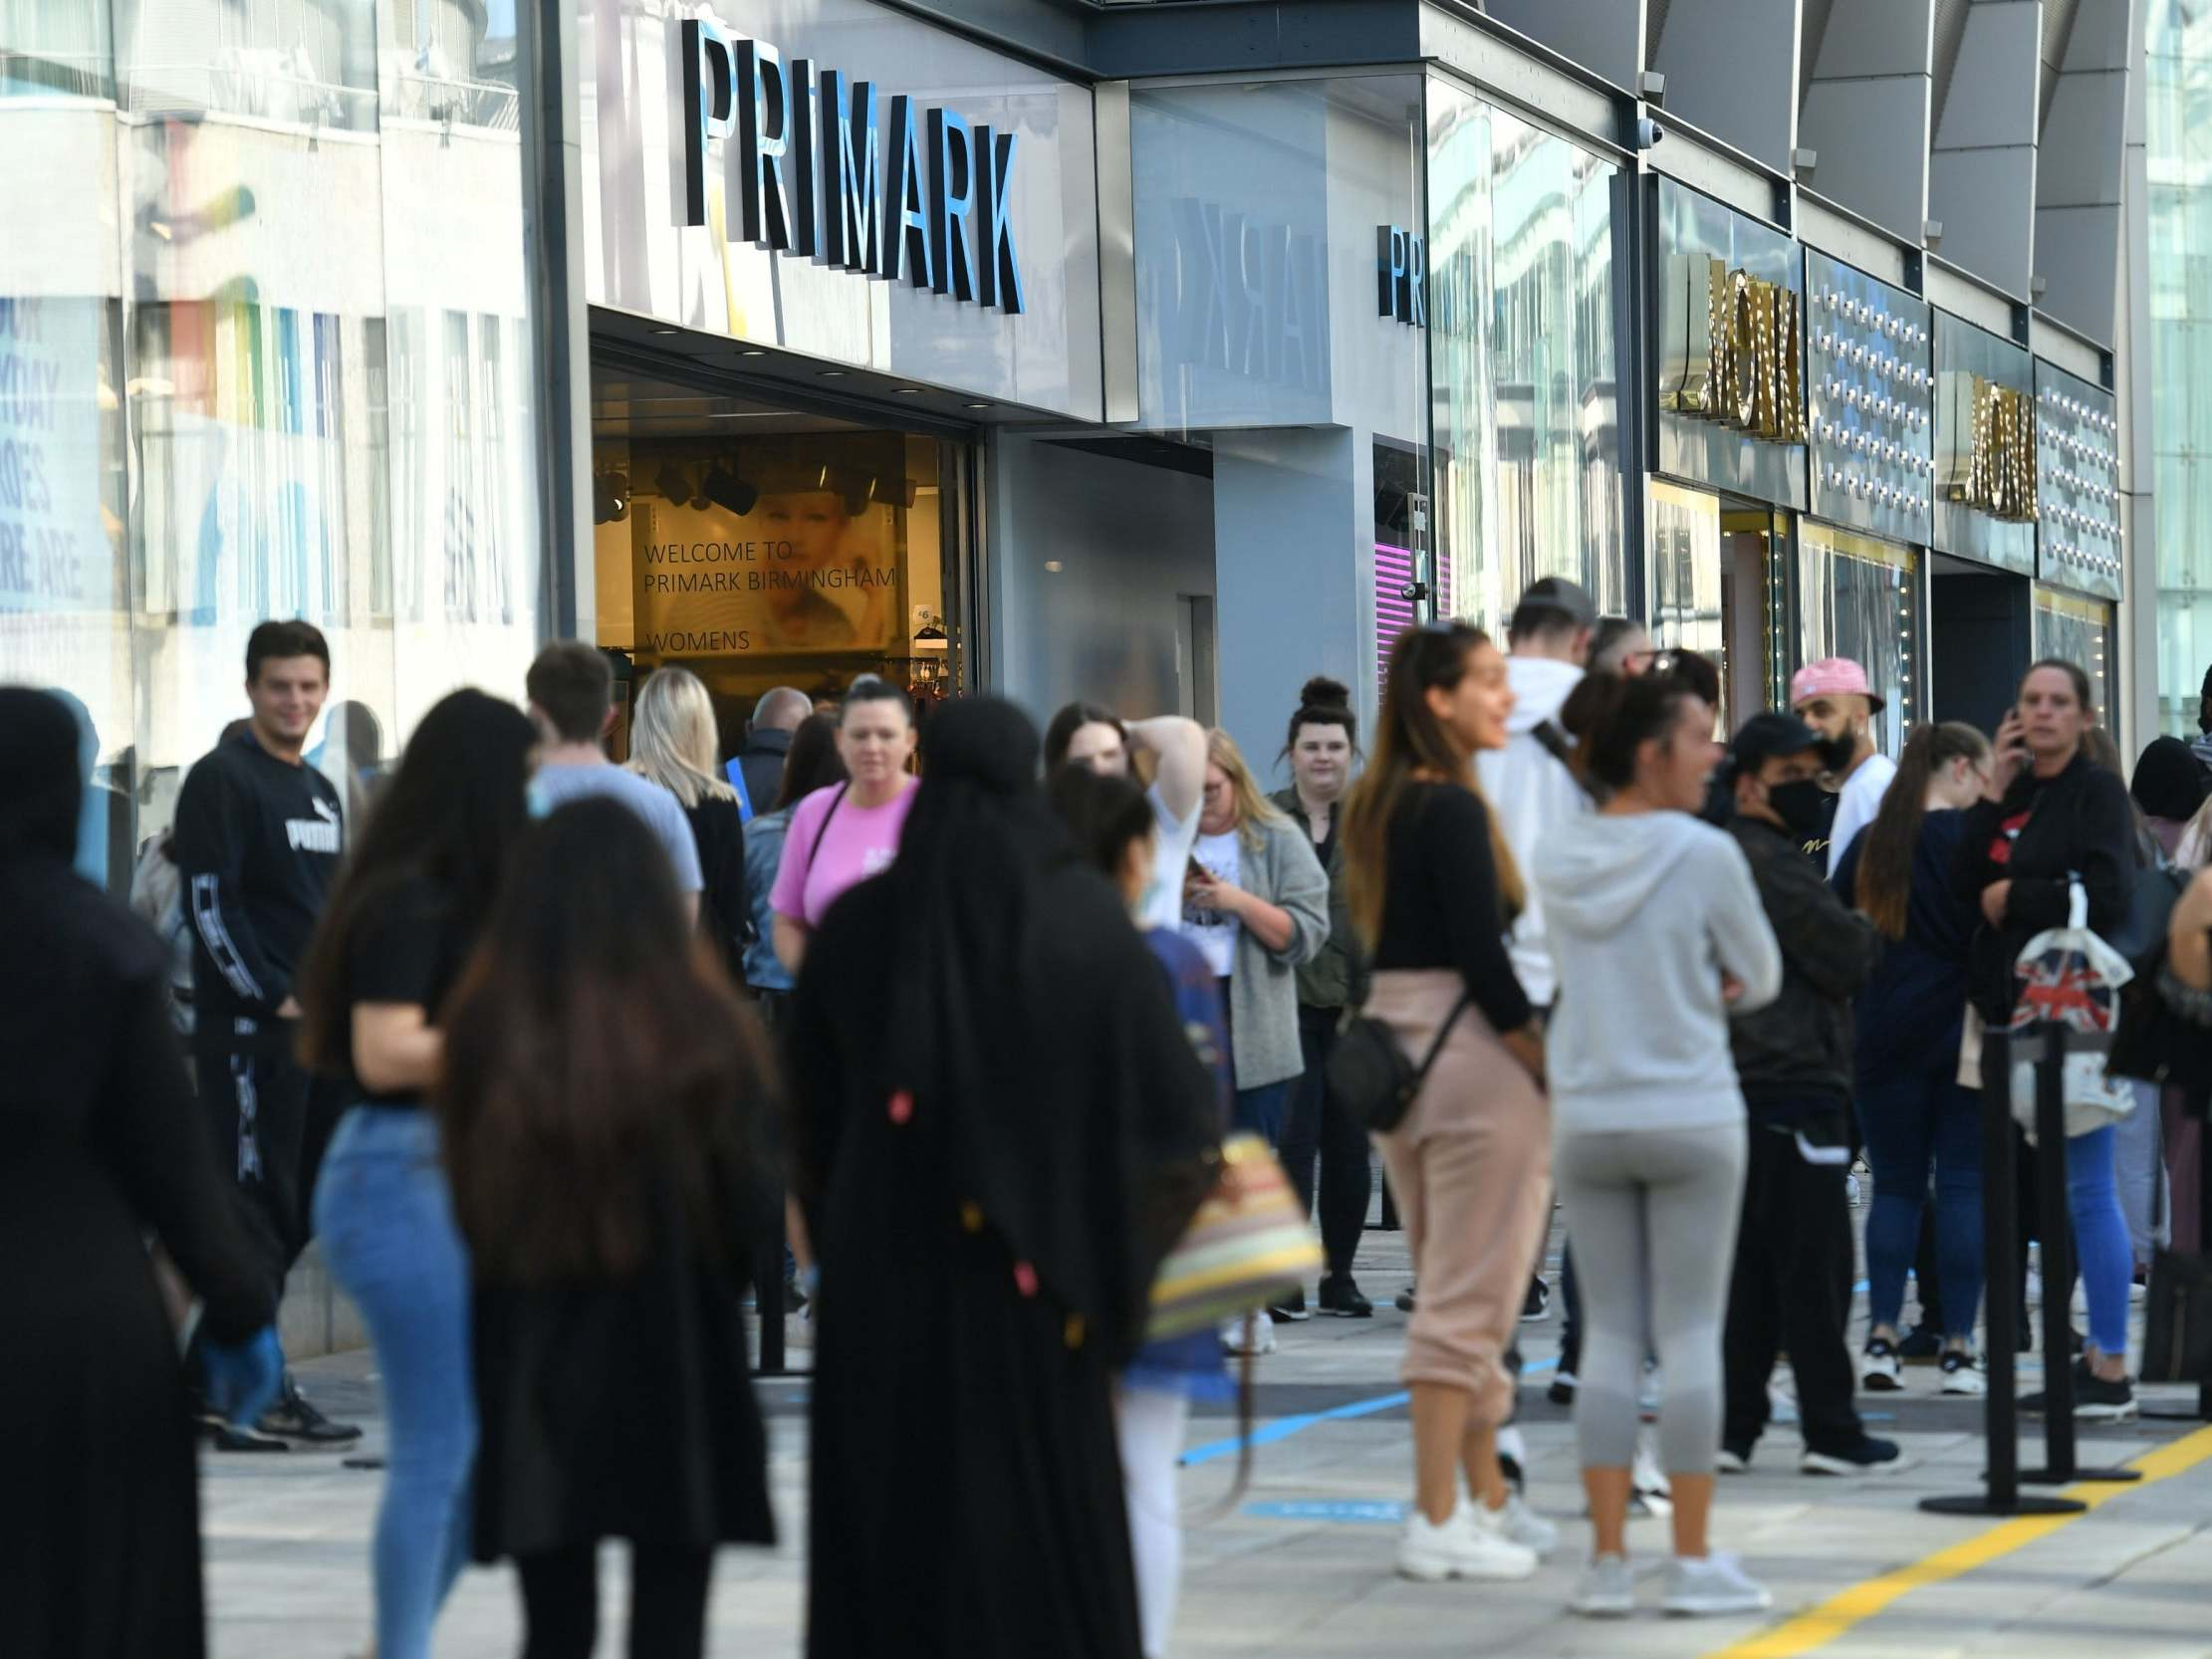 'Enormous' queues outside Primark stores as non-essential shops open for first time since lockdown